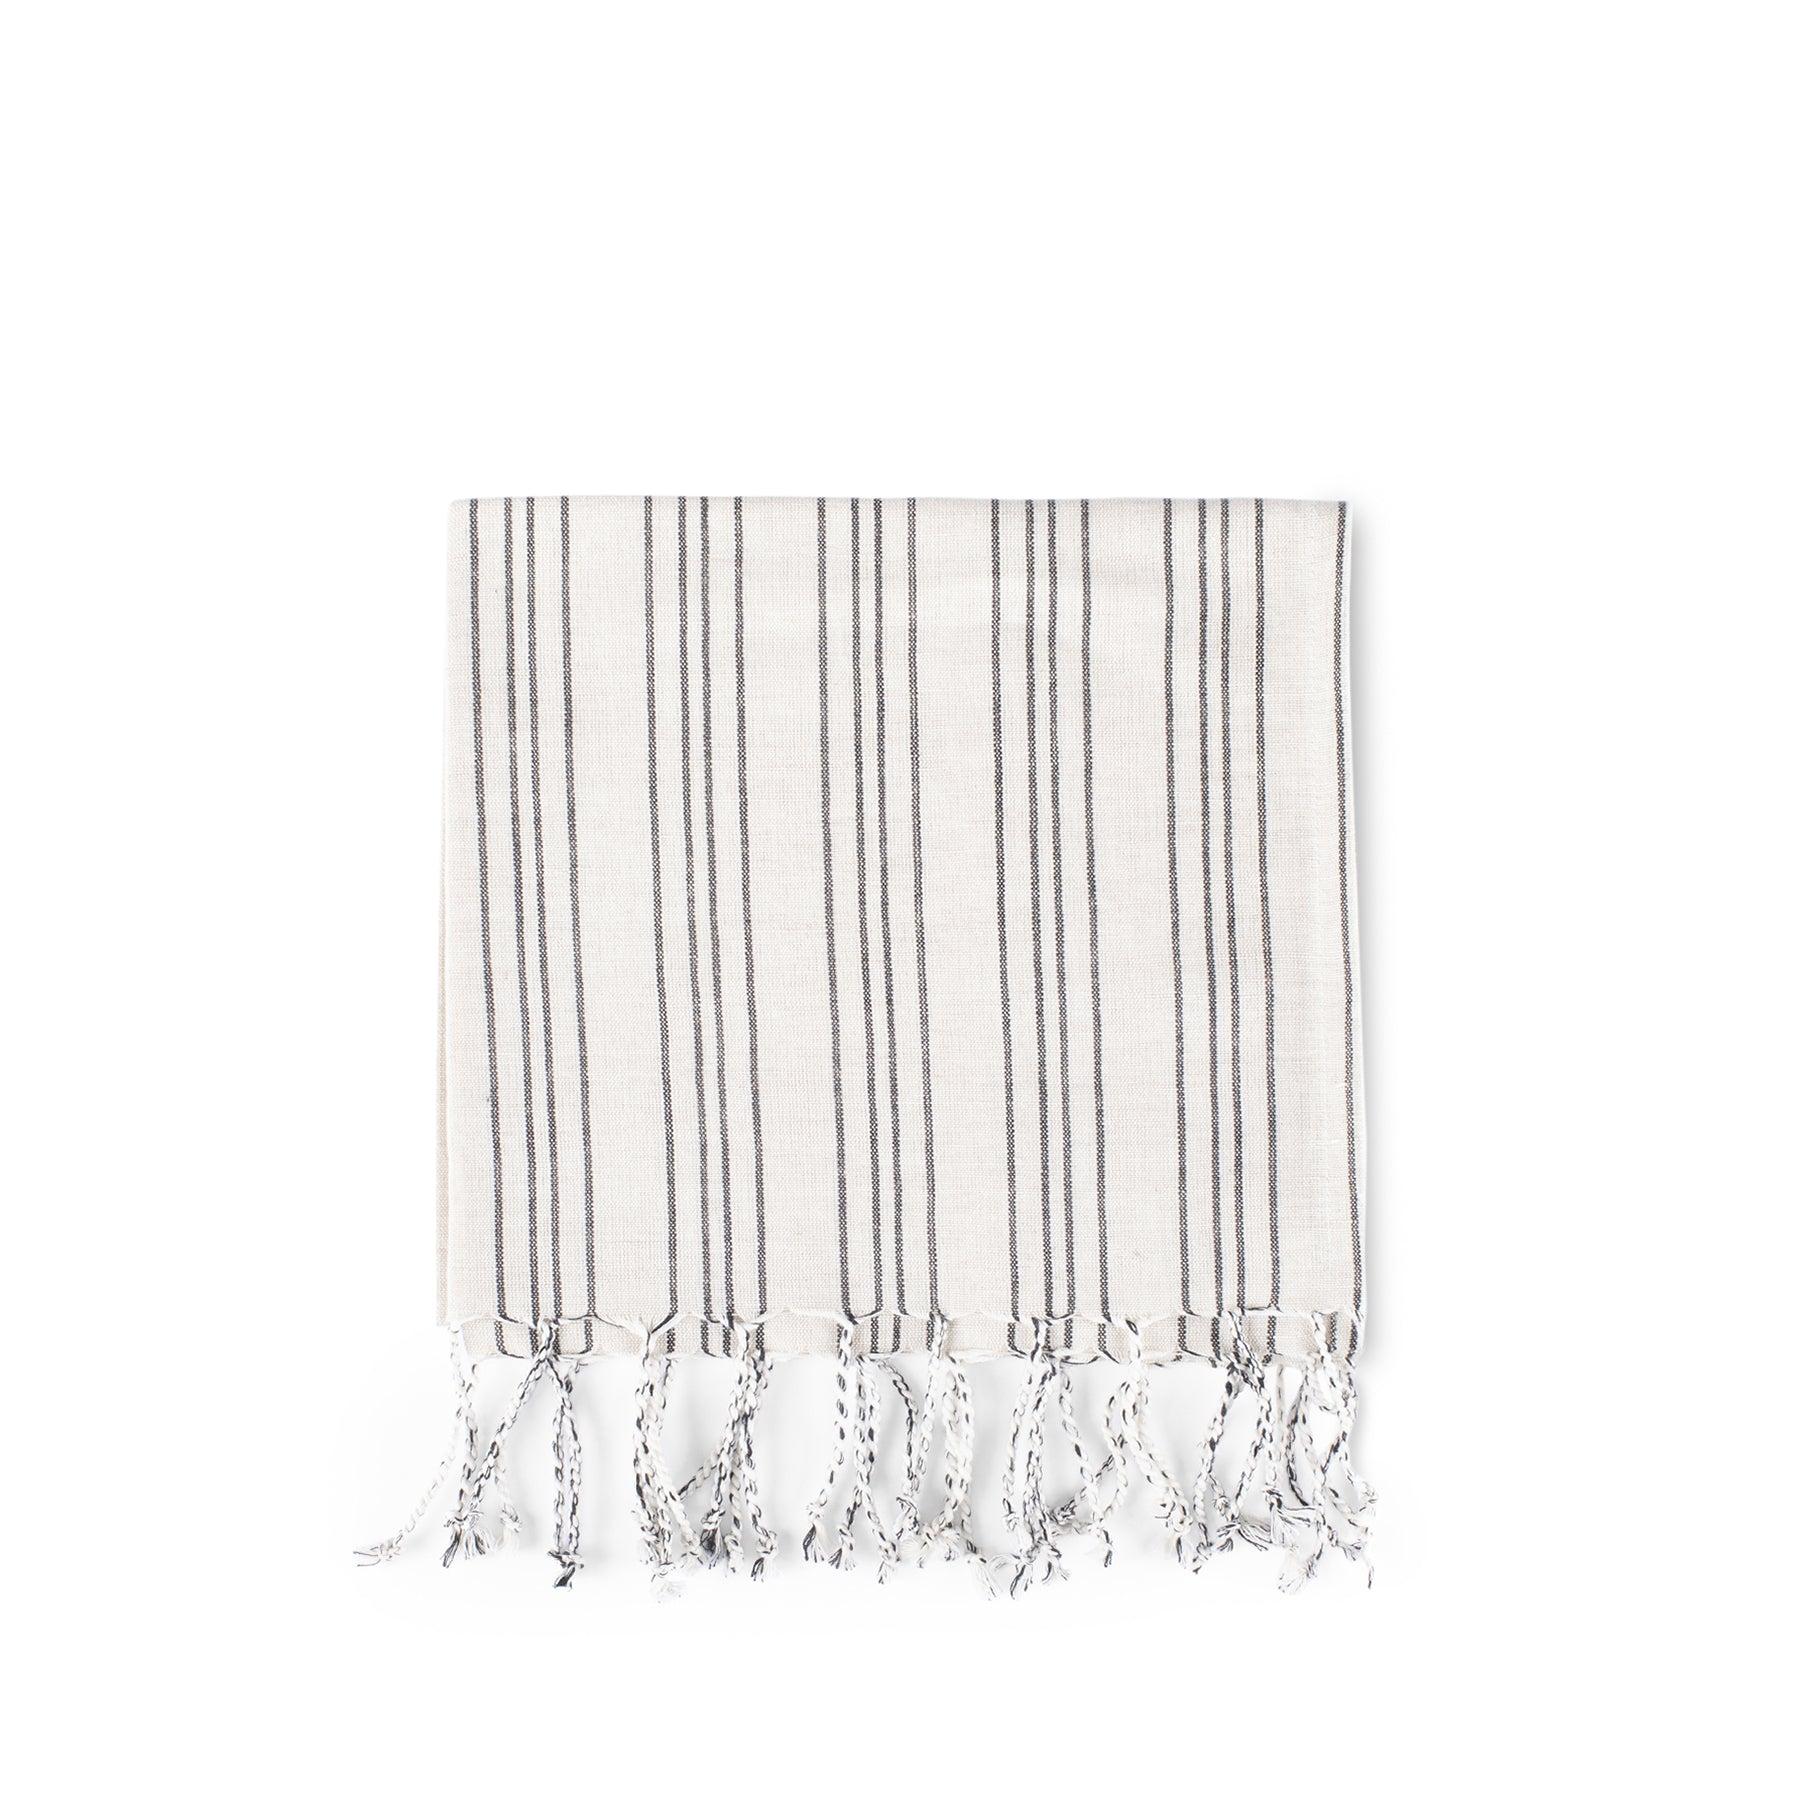 Cotton Linen Ticking Stripe Tea Towel in Ivory with Black Zoom Image 1